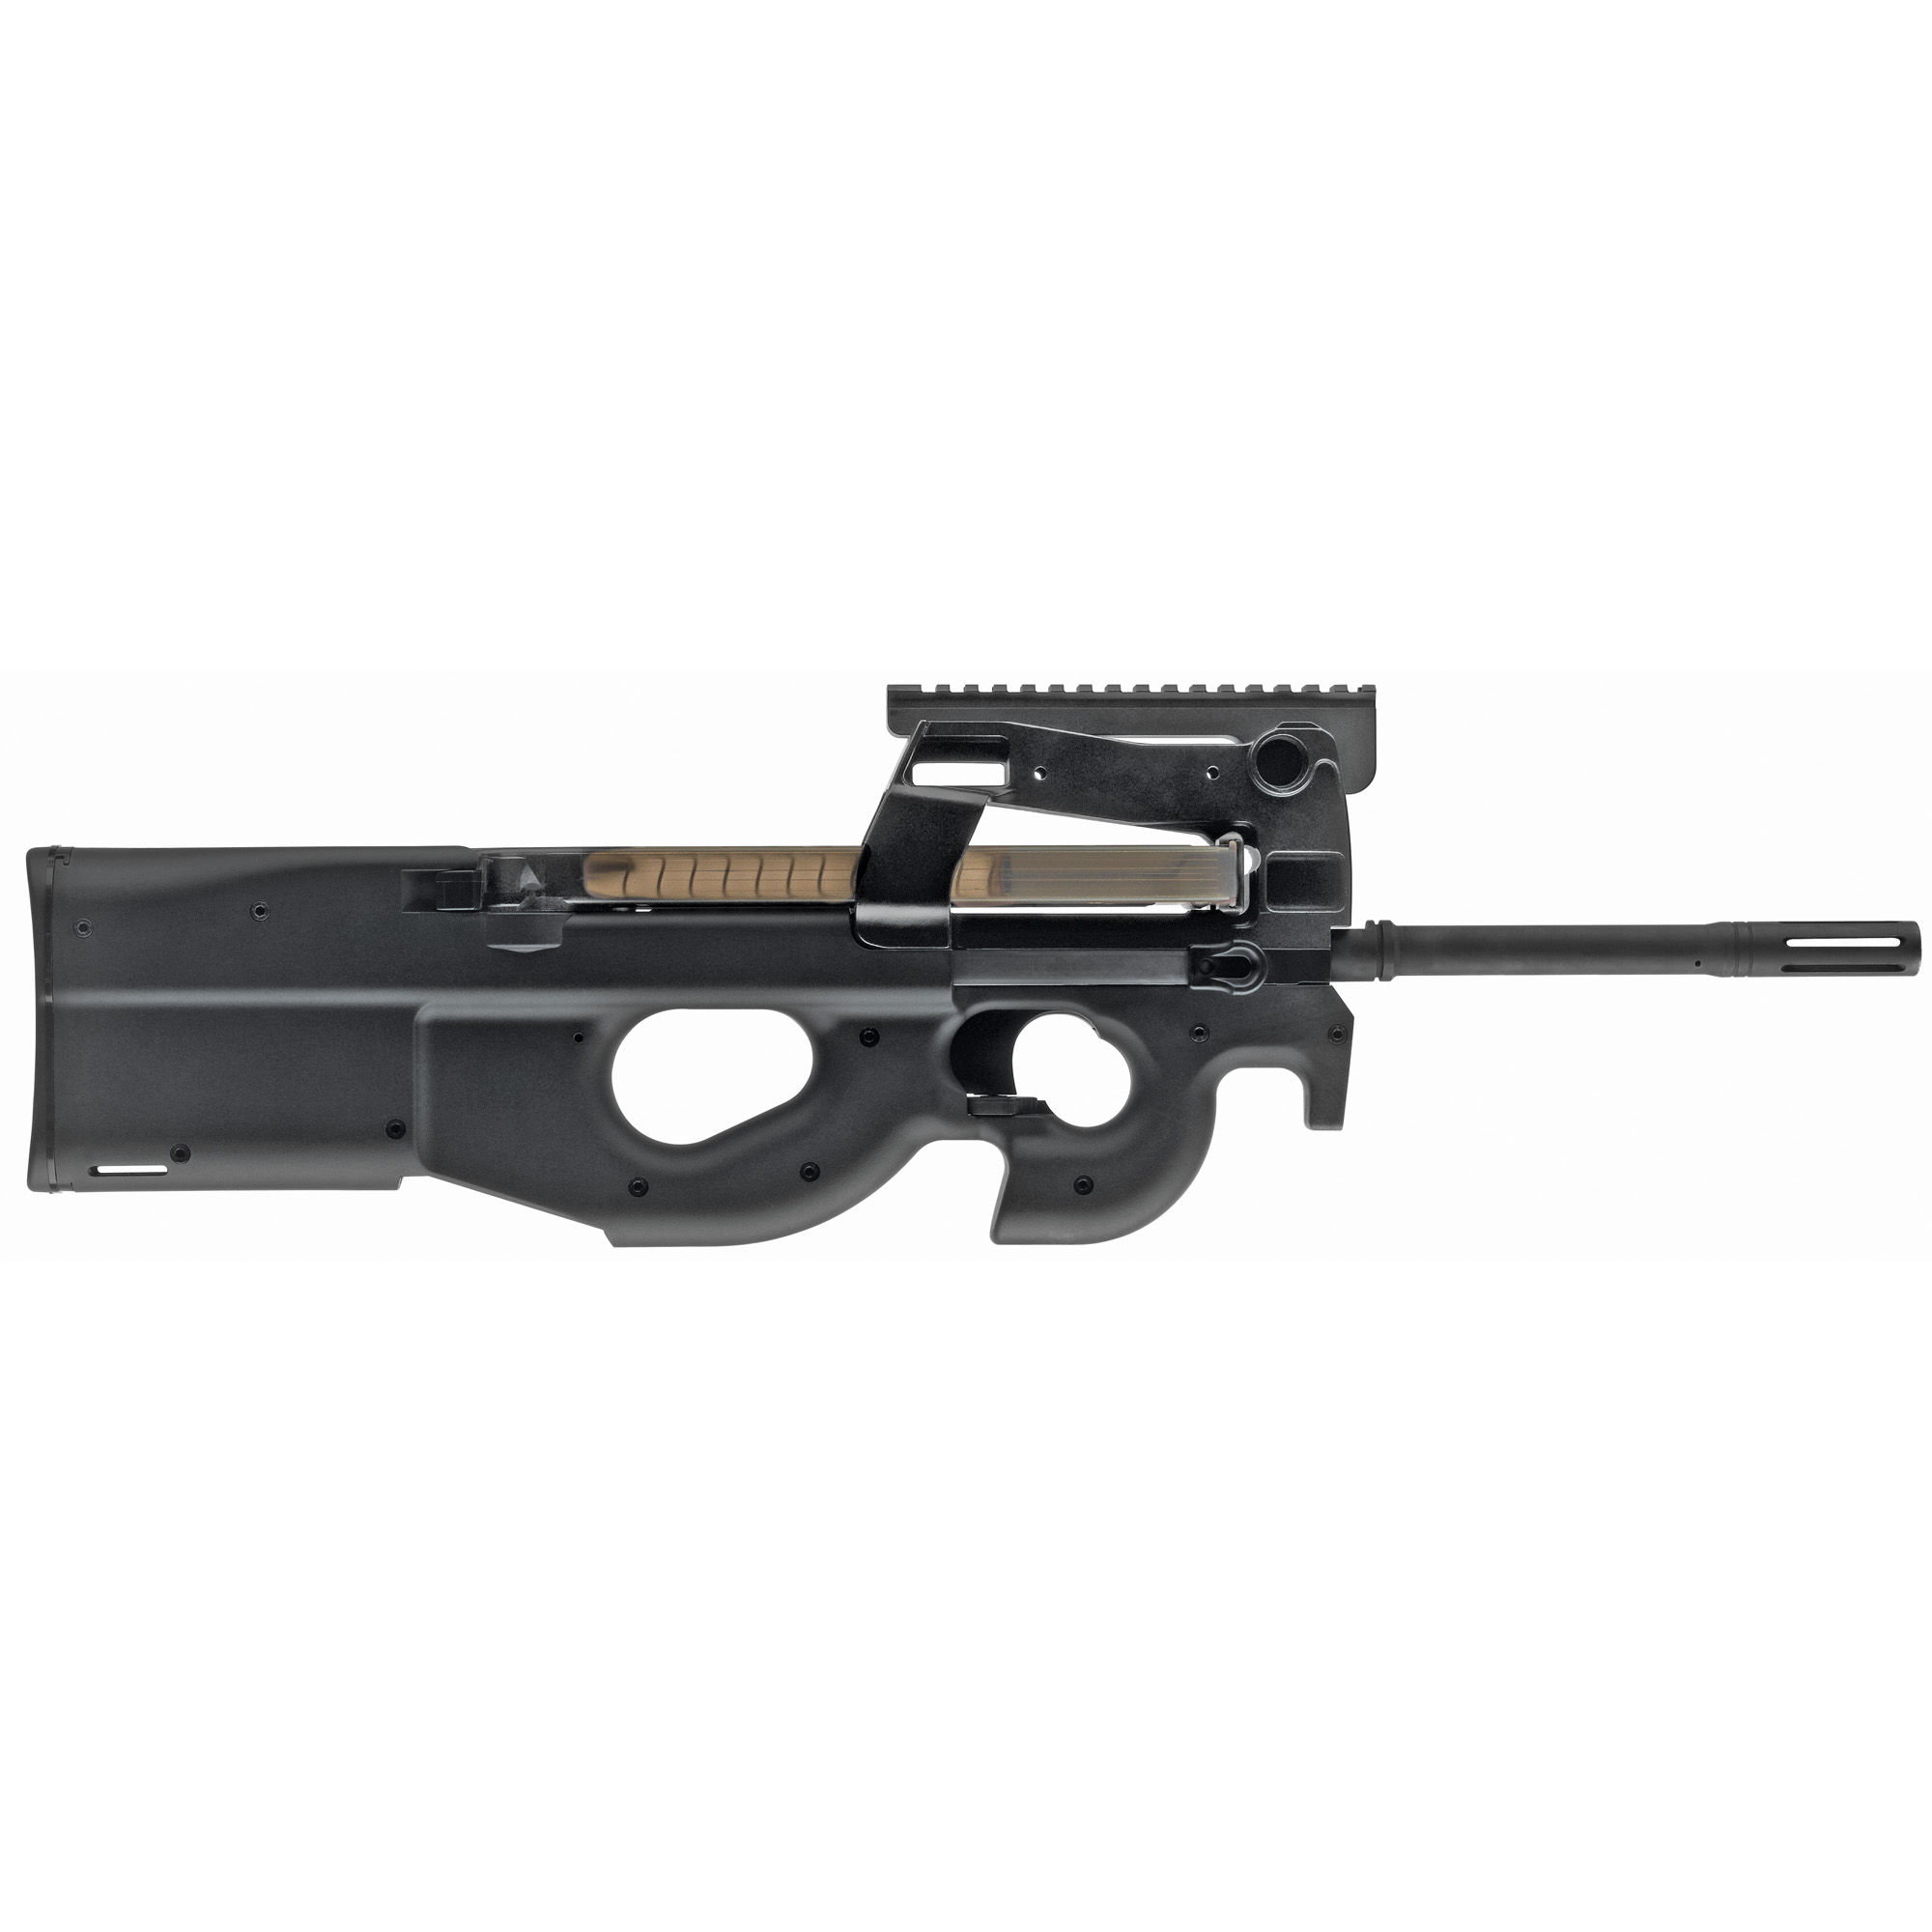 """Chambered in the 5.7x28mm cartridge"""" the FN PS90(R) utilizes blowback operation and fires from a closed bolt for greater accuracy and reliability. The FN PS90(R)'s civilian legal 16.04"""" cold hammer-forged MIL-SPEC barrel is equipped with an integrated muzzle brake to reduce recoil. Dual magazine latches"""" cocking handles and an innovative synthetic thumbhole stock with a molded-in sling attachment point help make the FN PS90(R) fully ambidextrous."""